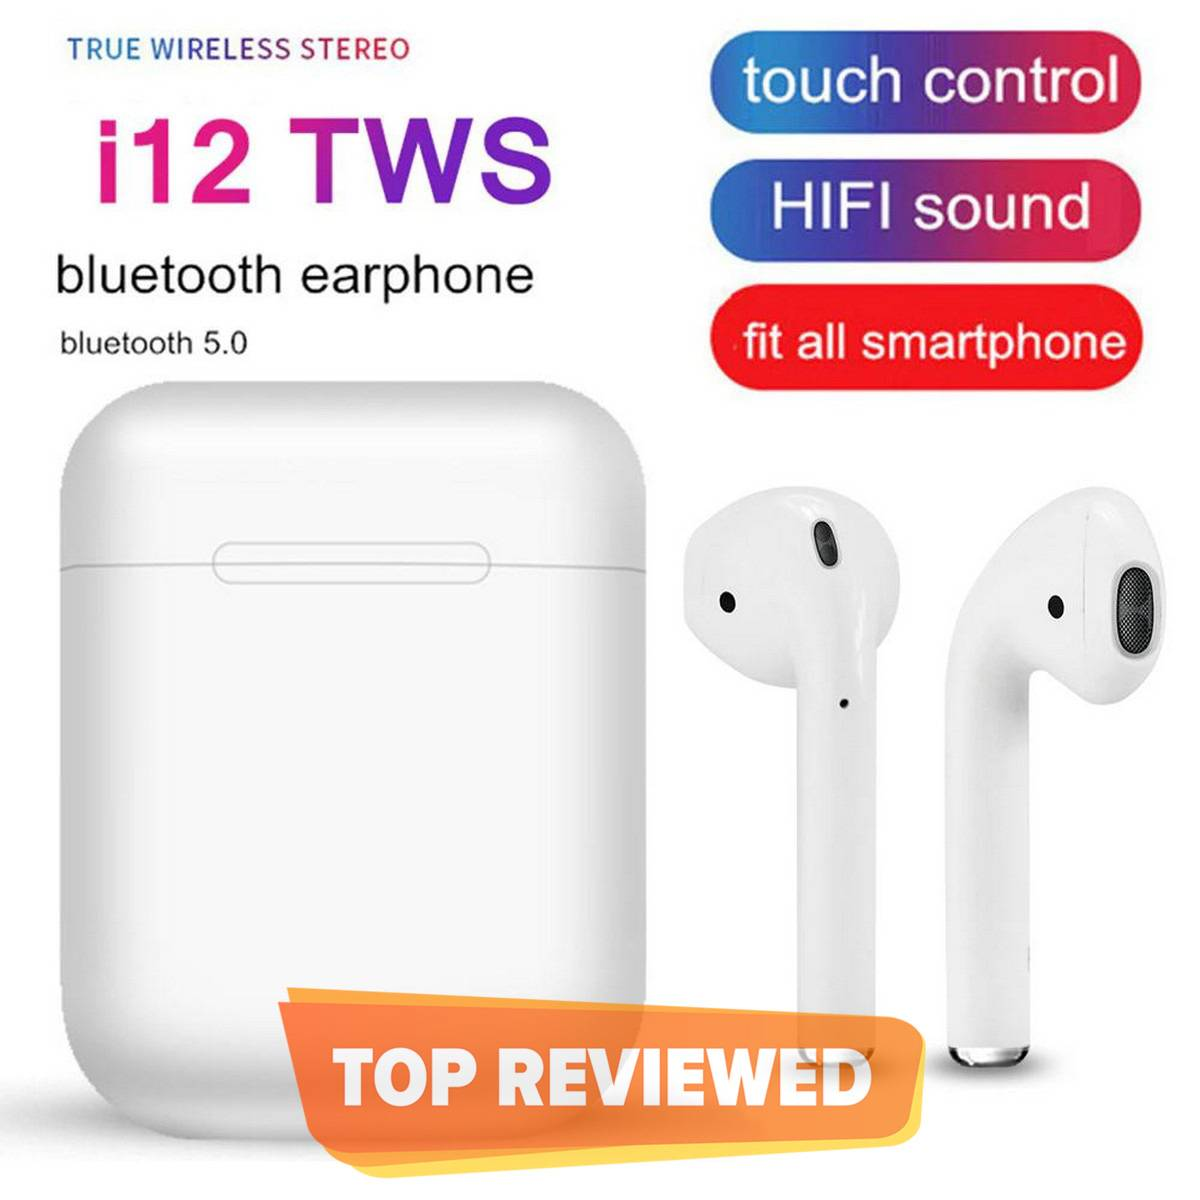 High Quality i12 TWS Touch Key Sensor Universal Mini Wireless Earphone Bluetooth 5.0 Headset Sports Earbuds Airpods With Charging Dock / Base for Android IPhone